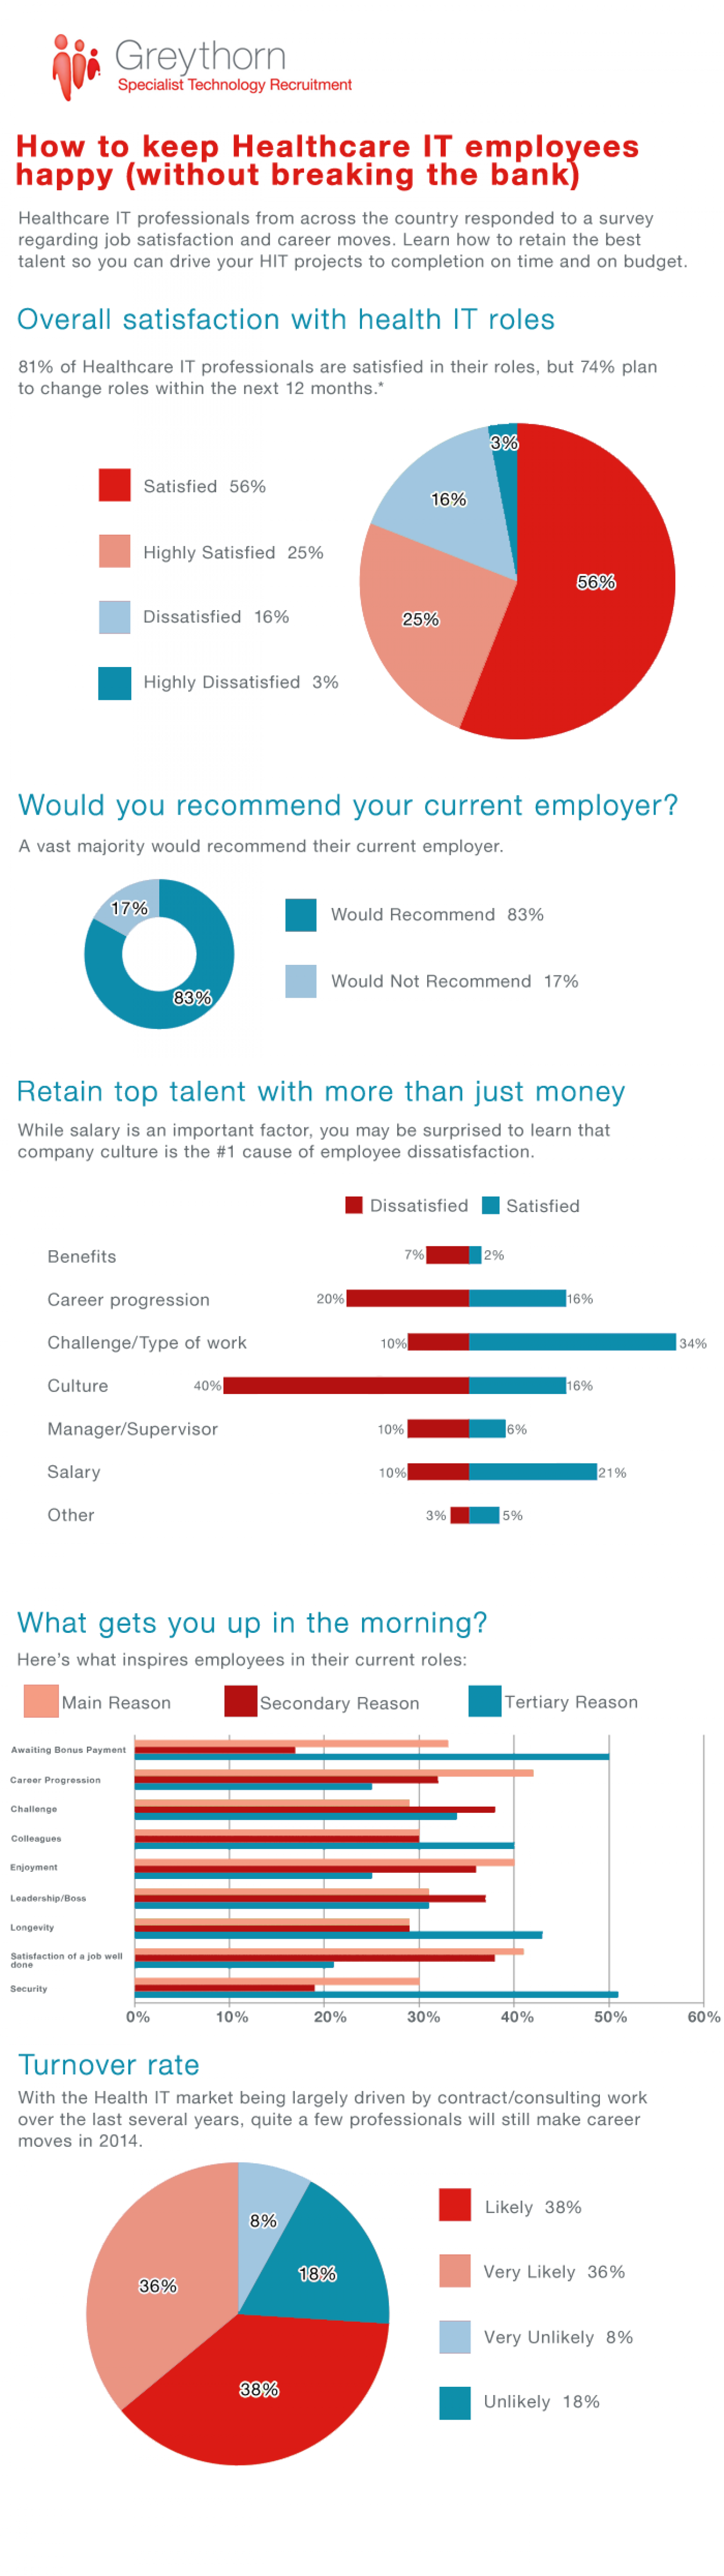 How to Keep Healthcare IT Employees Happy Infographic